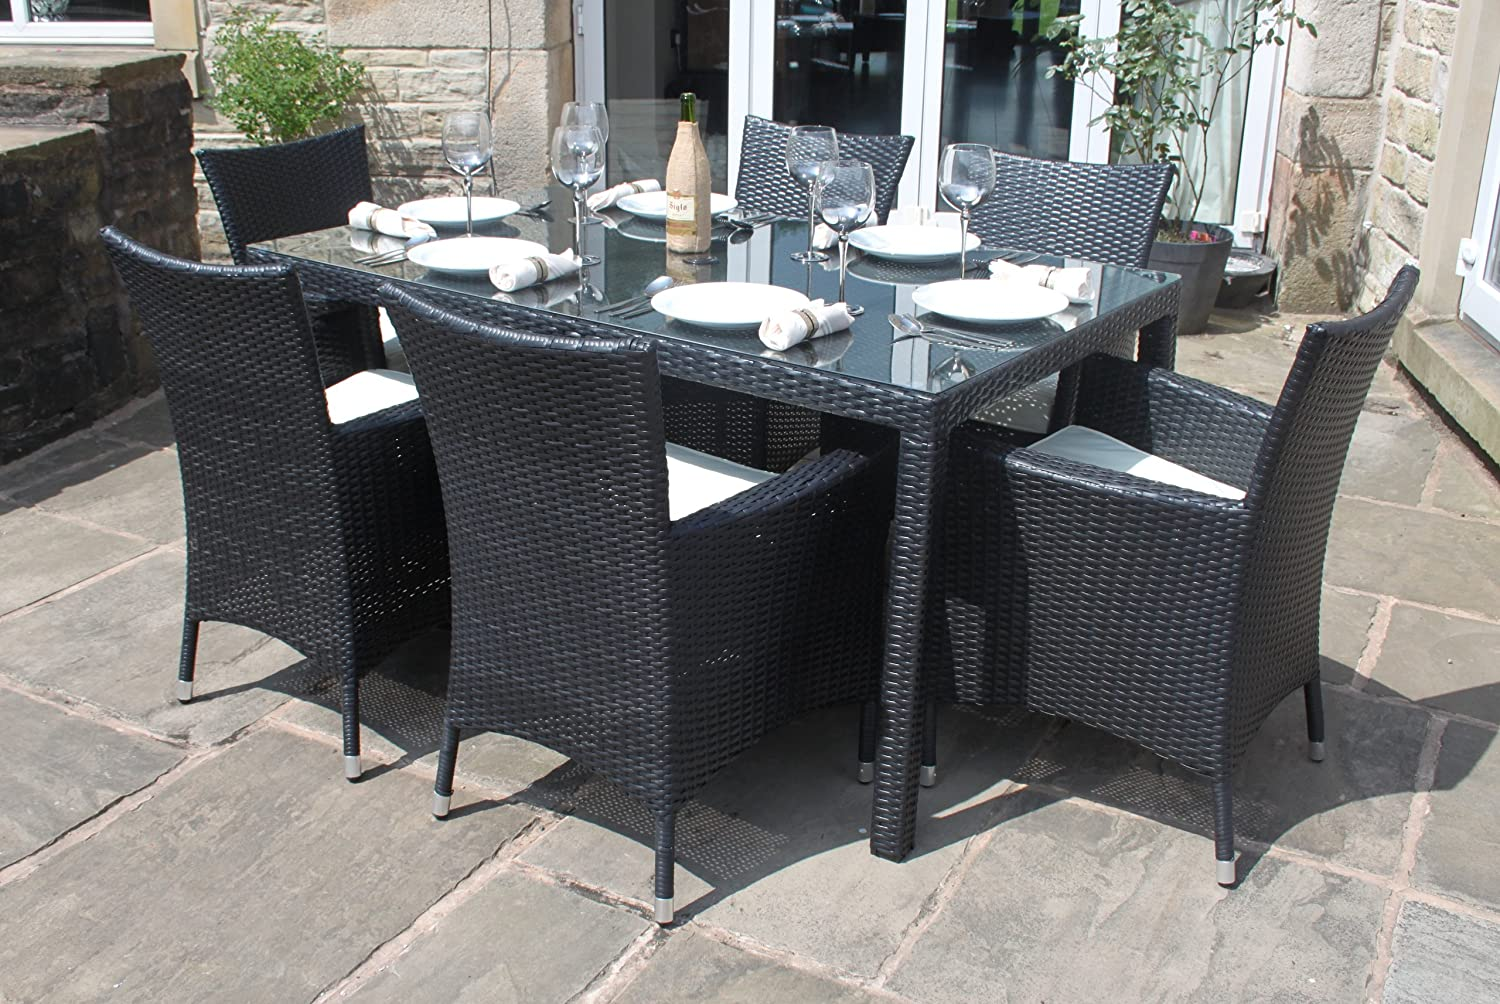 Weatherproof Rattan 6 Seater Garden Furniture Dining Set In Black:  Amazon.co.uk: Garden U0026 Outdoors